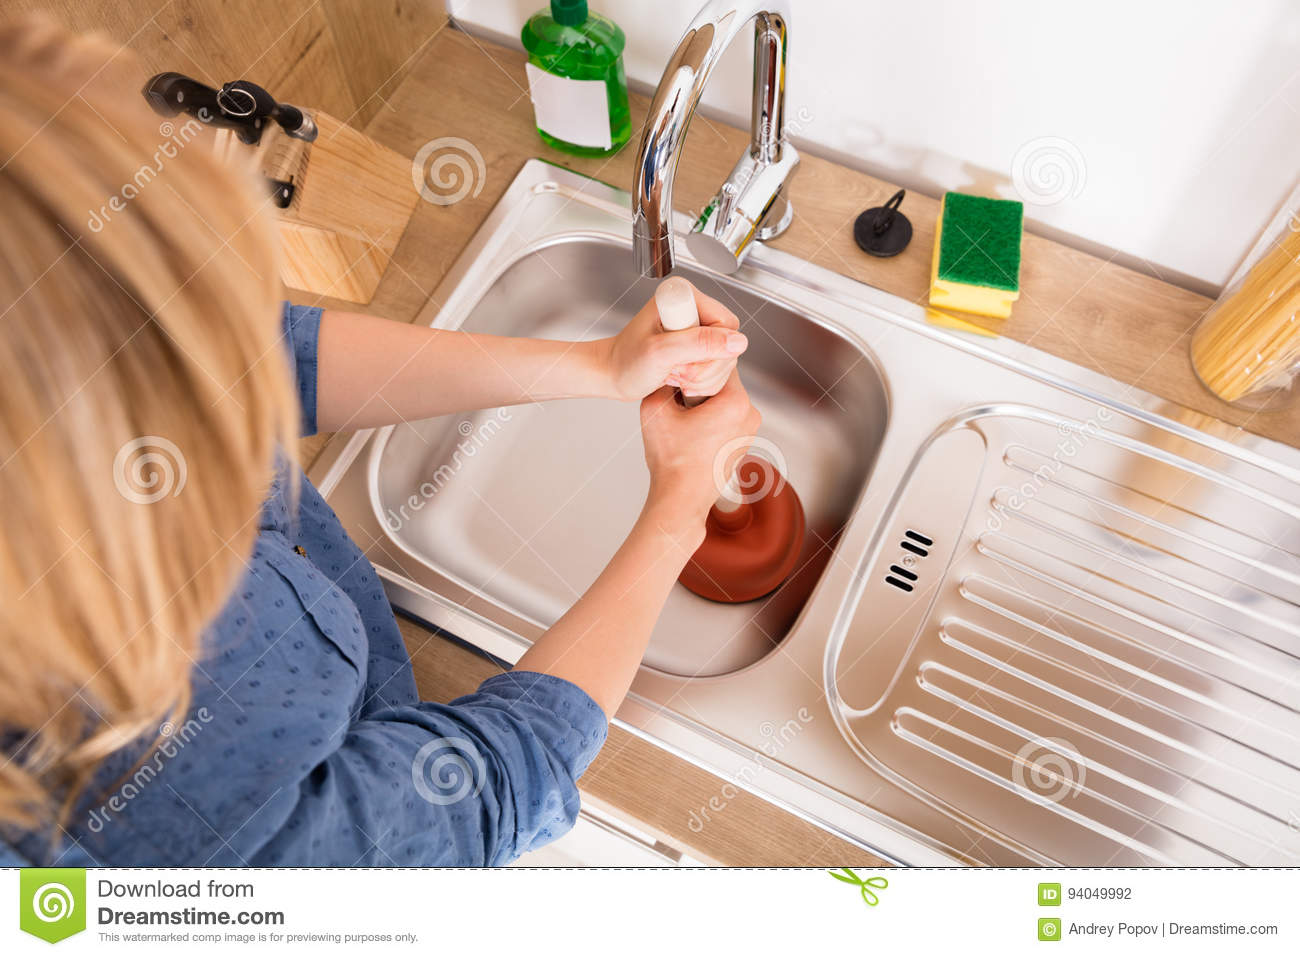 High Angle View Of Woman Using Plunger In Sink